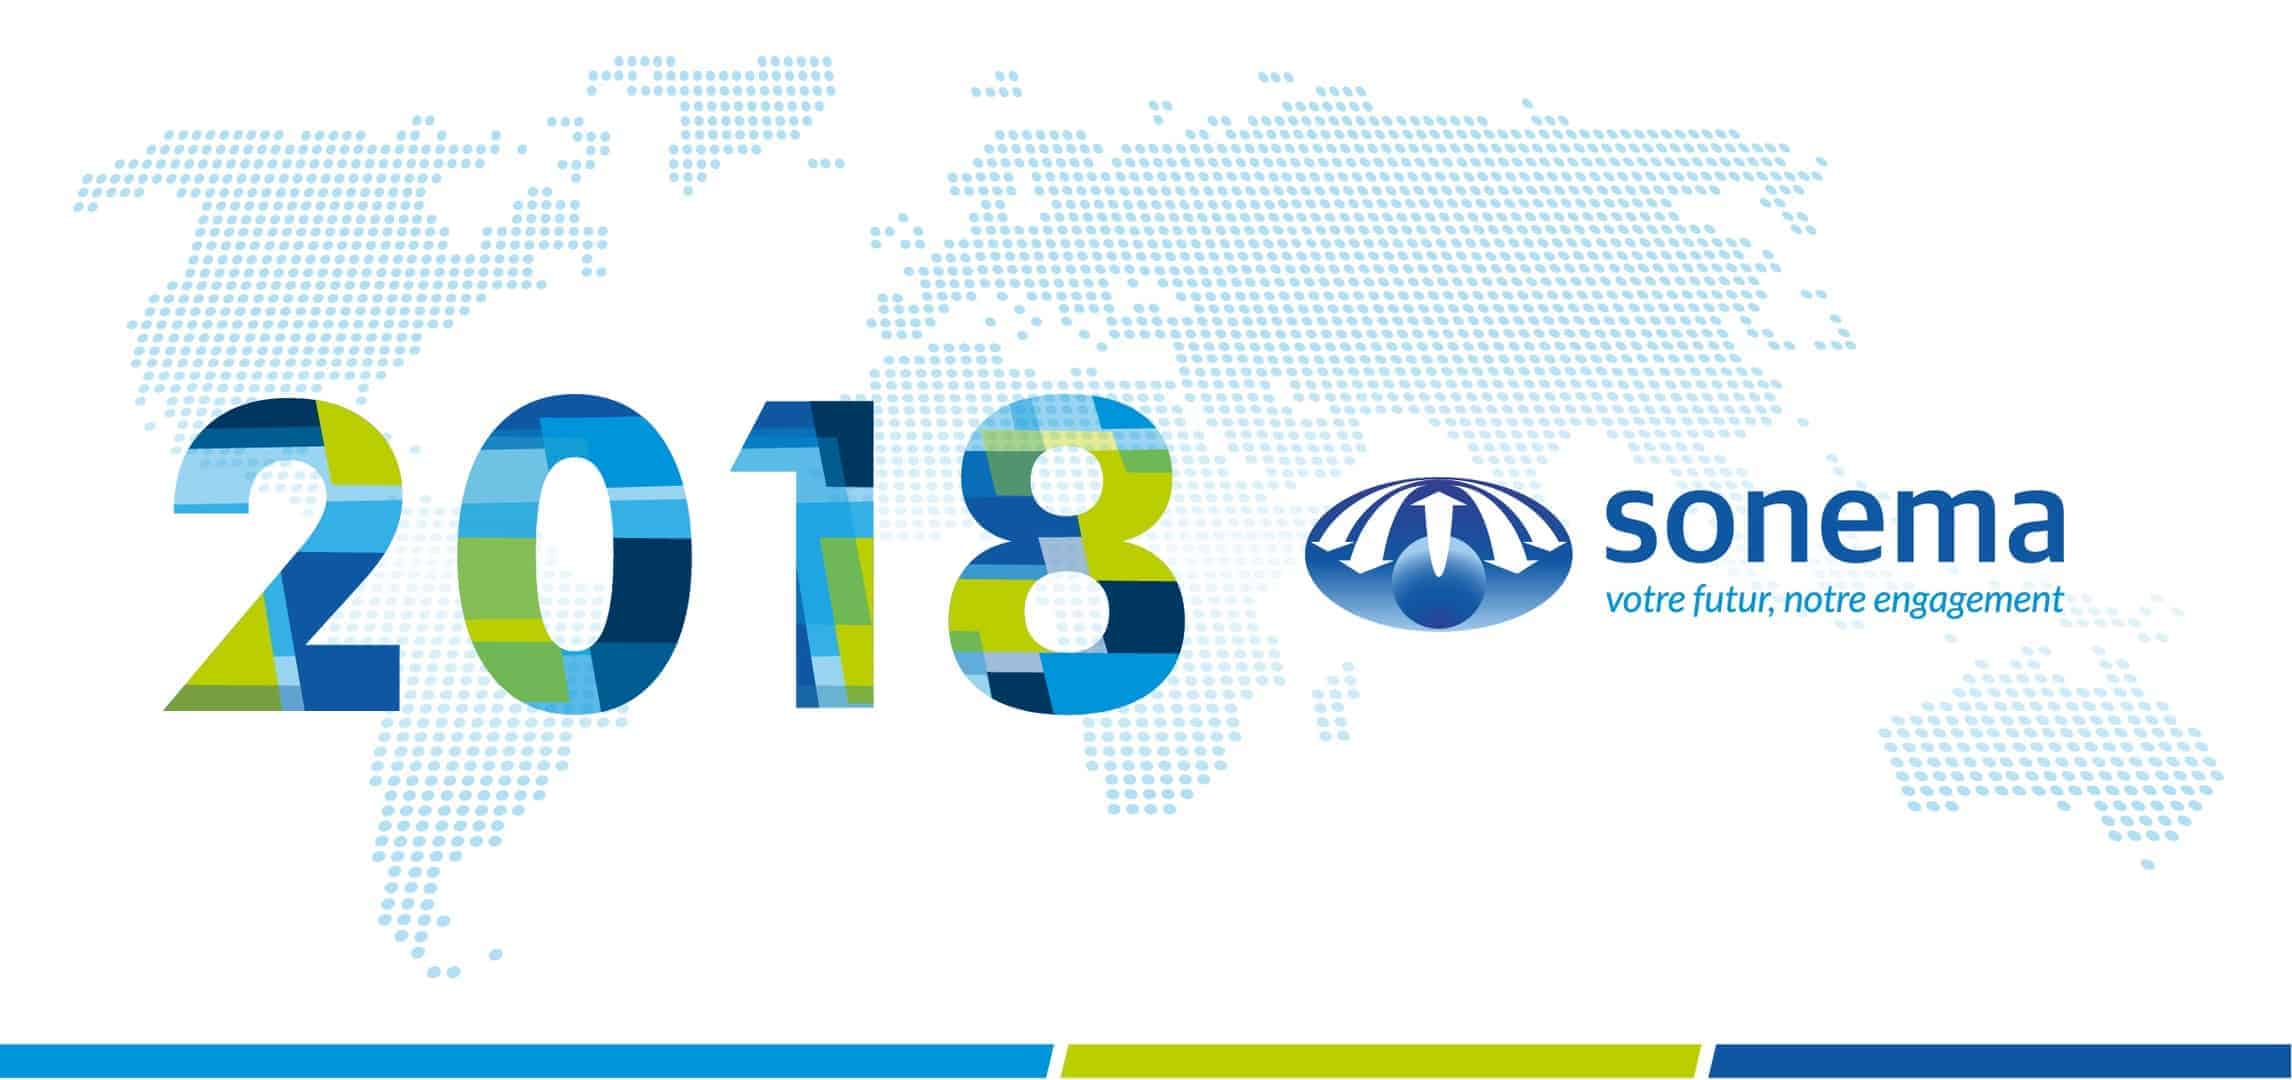 Sonema Wishes You a Happy New Year!